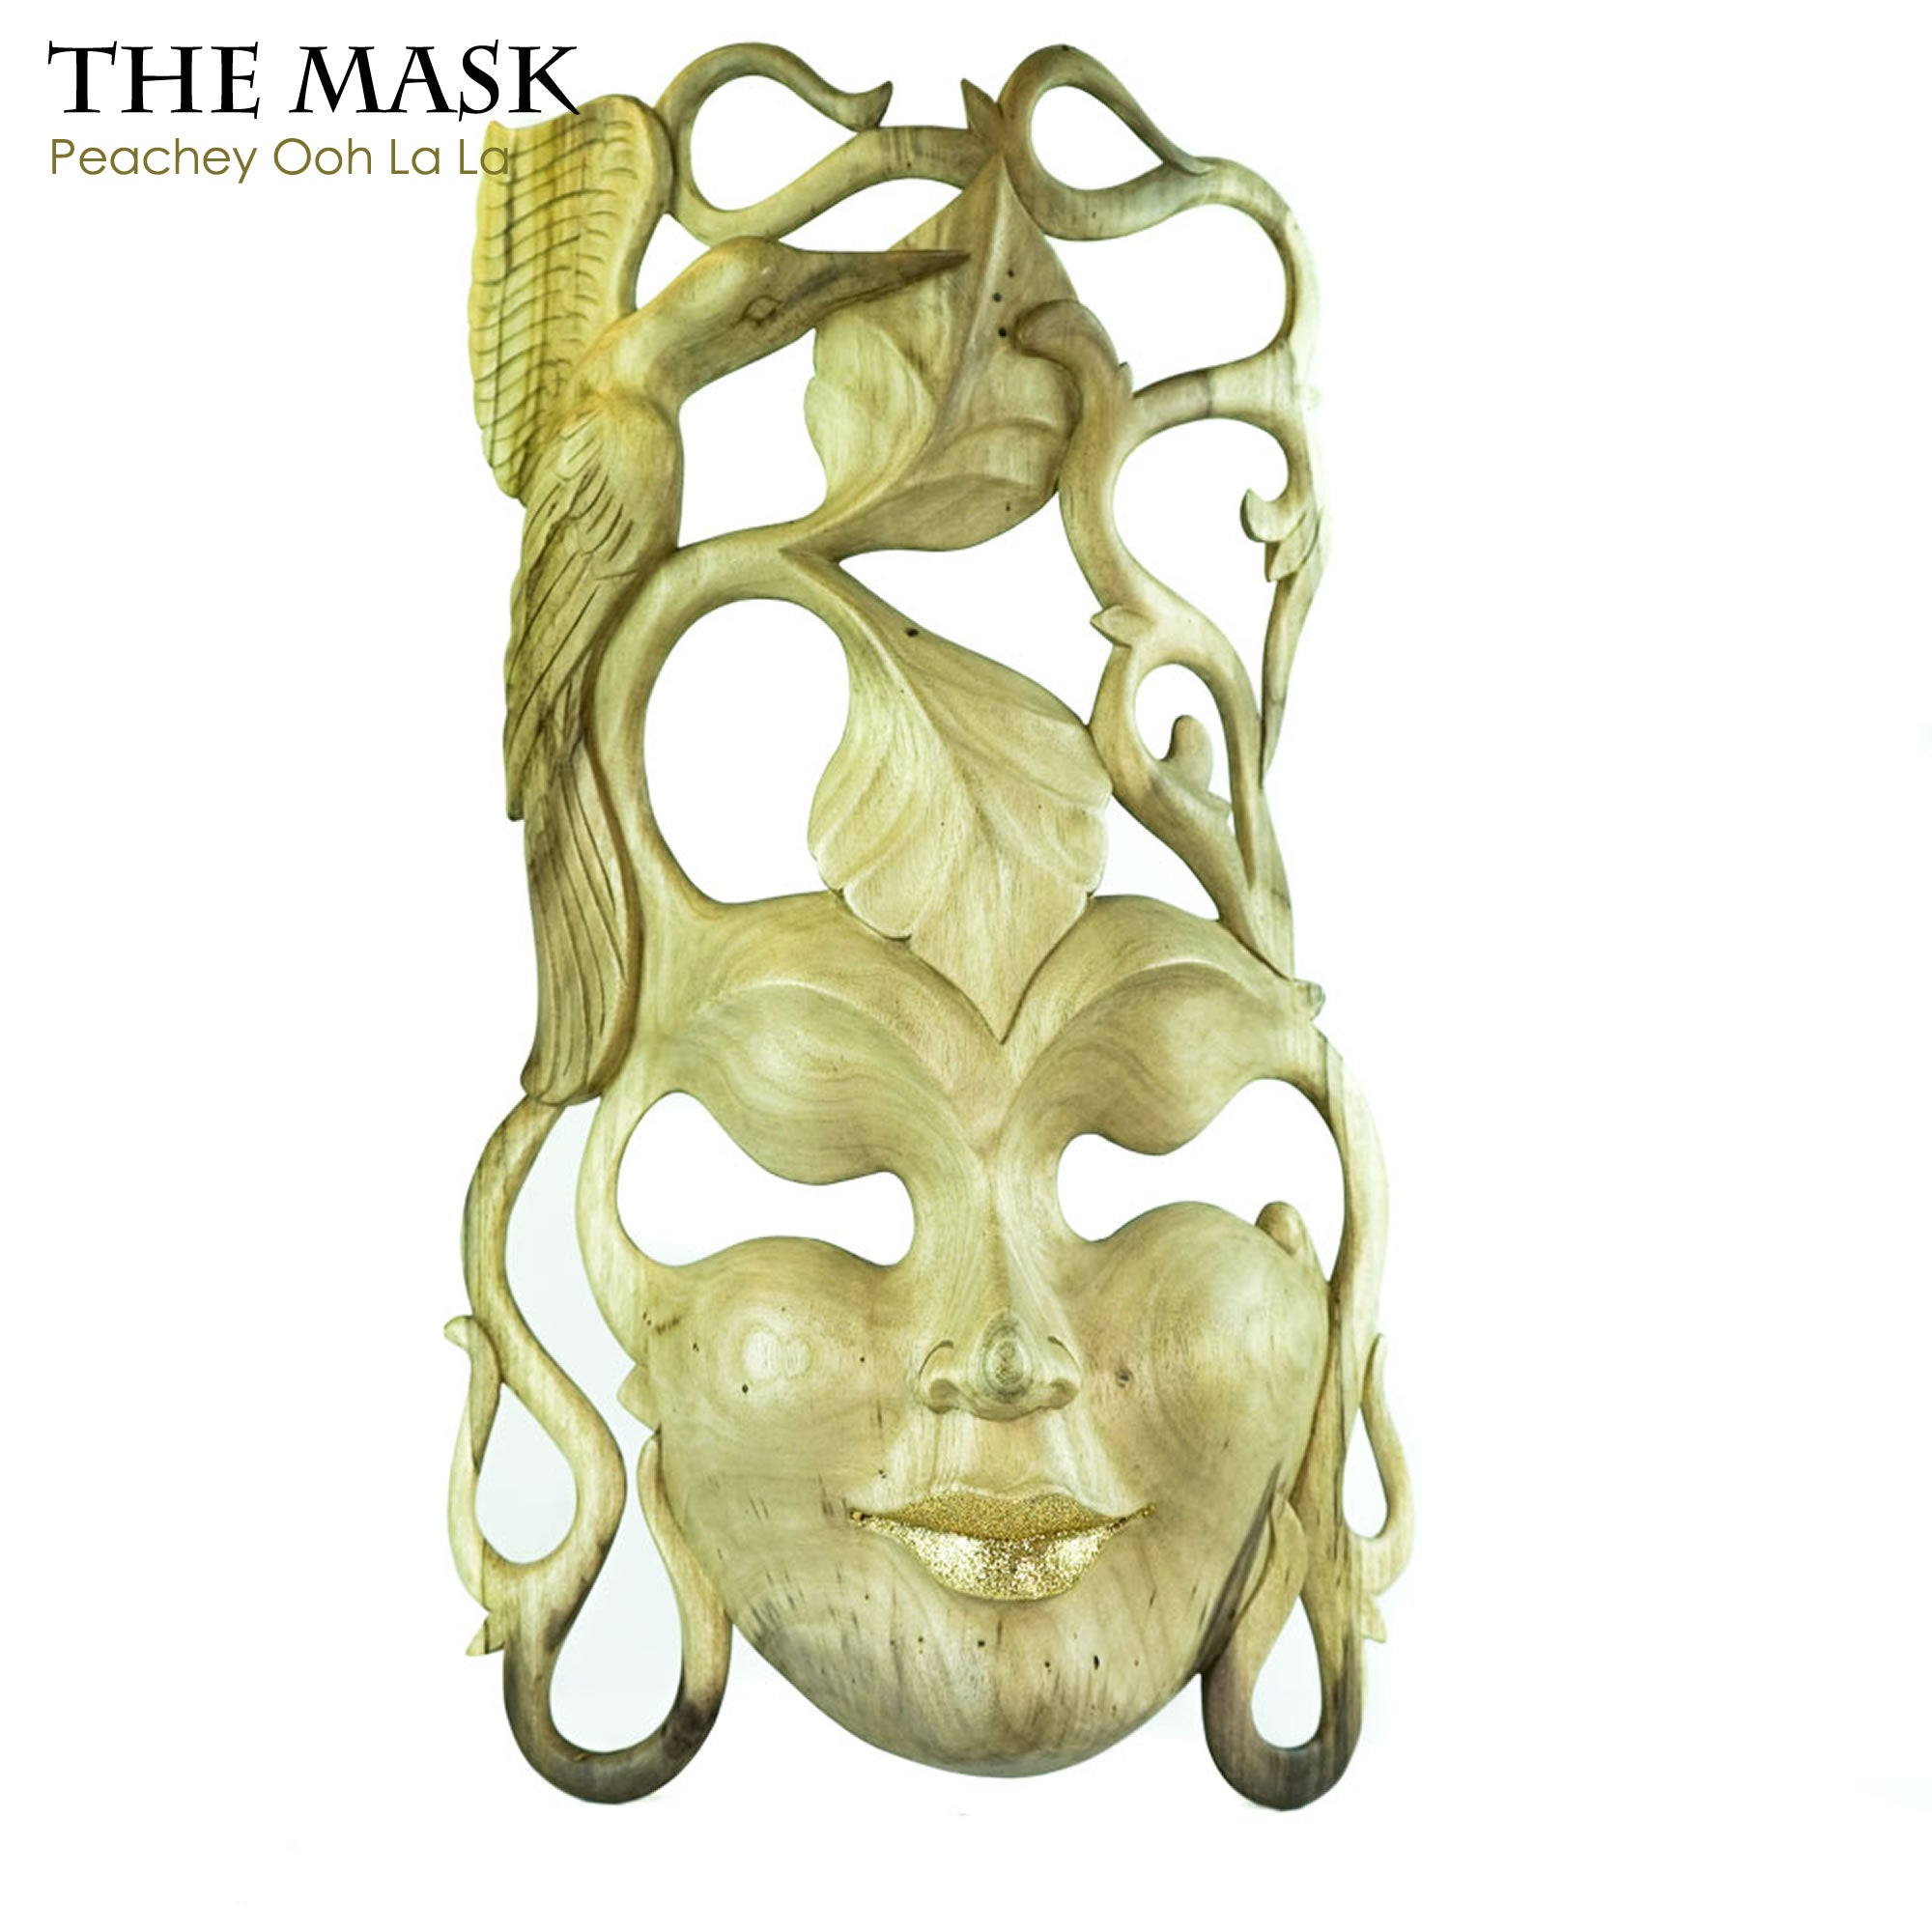 Handmade Carved Wooden Decorative Wall Art Italian Mask Peachey Ooh La La - Easternada